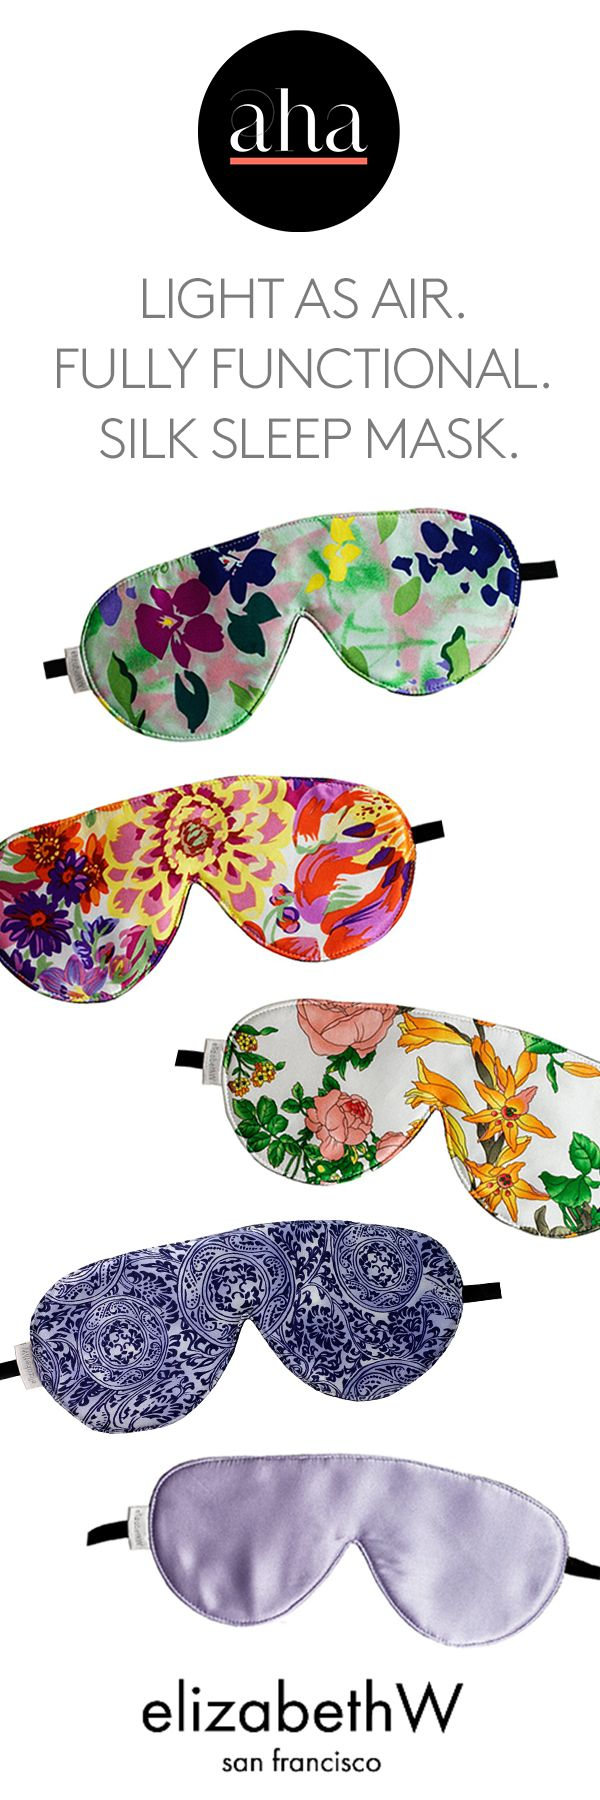 Sleep Mask by elizabethW - Light as air yet still functional, this eye mask blocks out sunlight while protecting your delicate eyes with the soft touch of pure silk, which also helps keep your skin hydrated and reduces hard lines around your eyes. An anti-aging must-have!